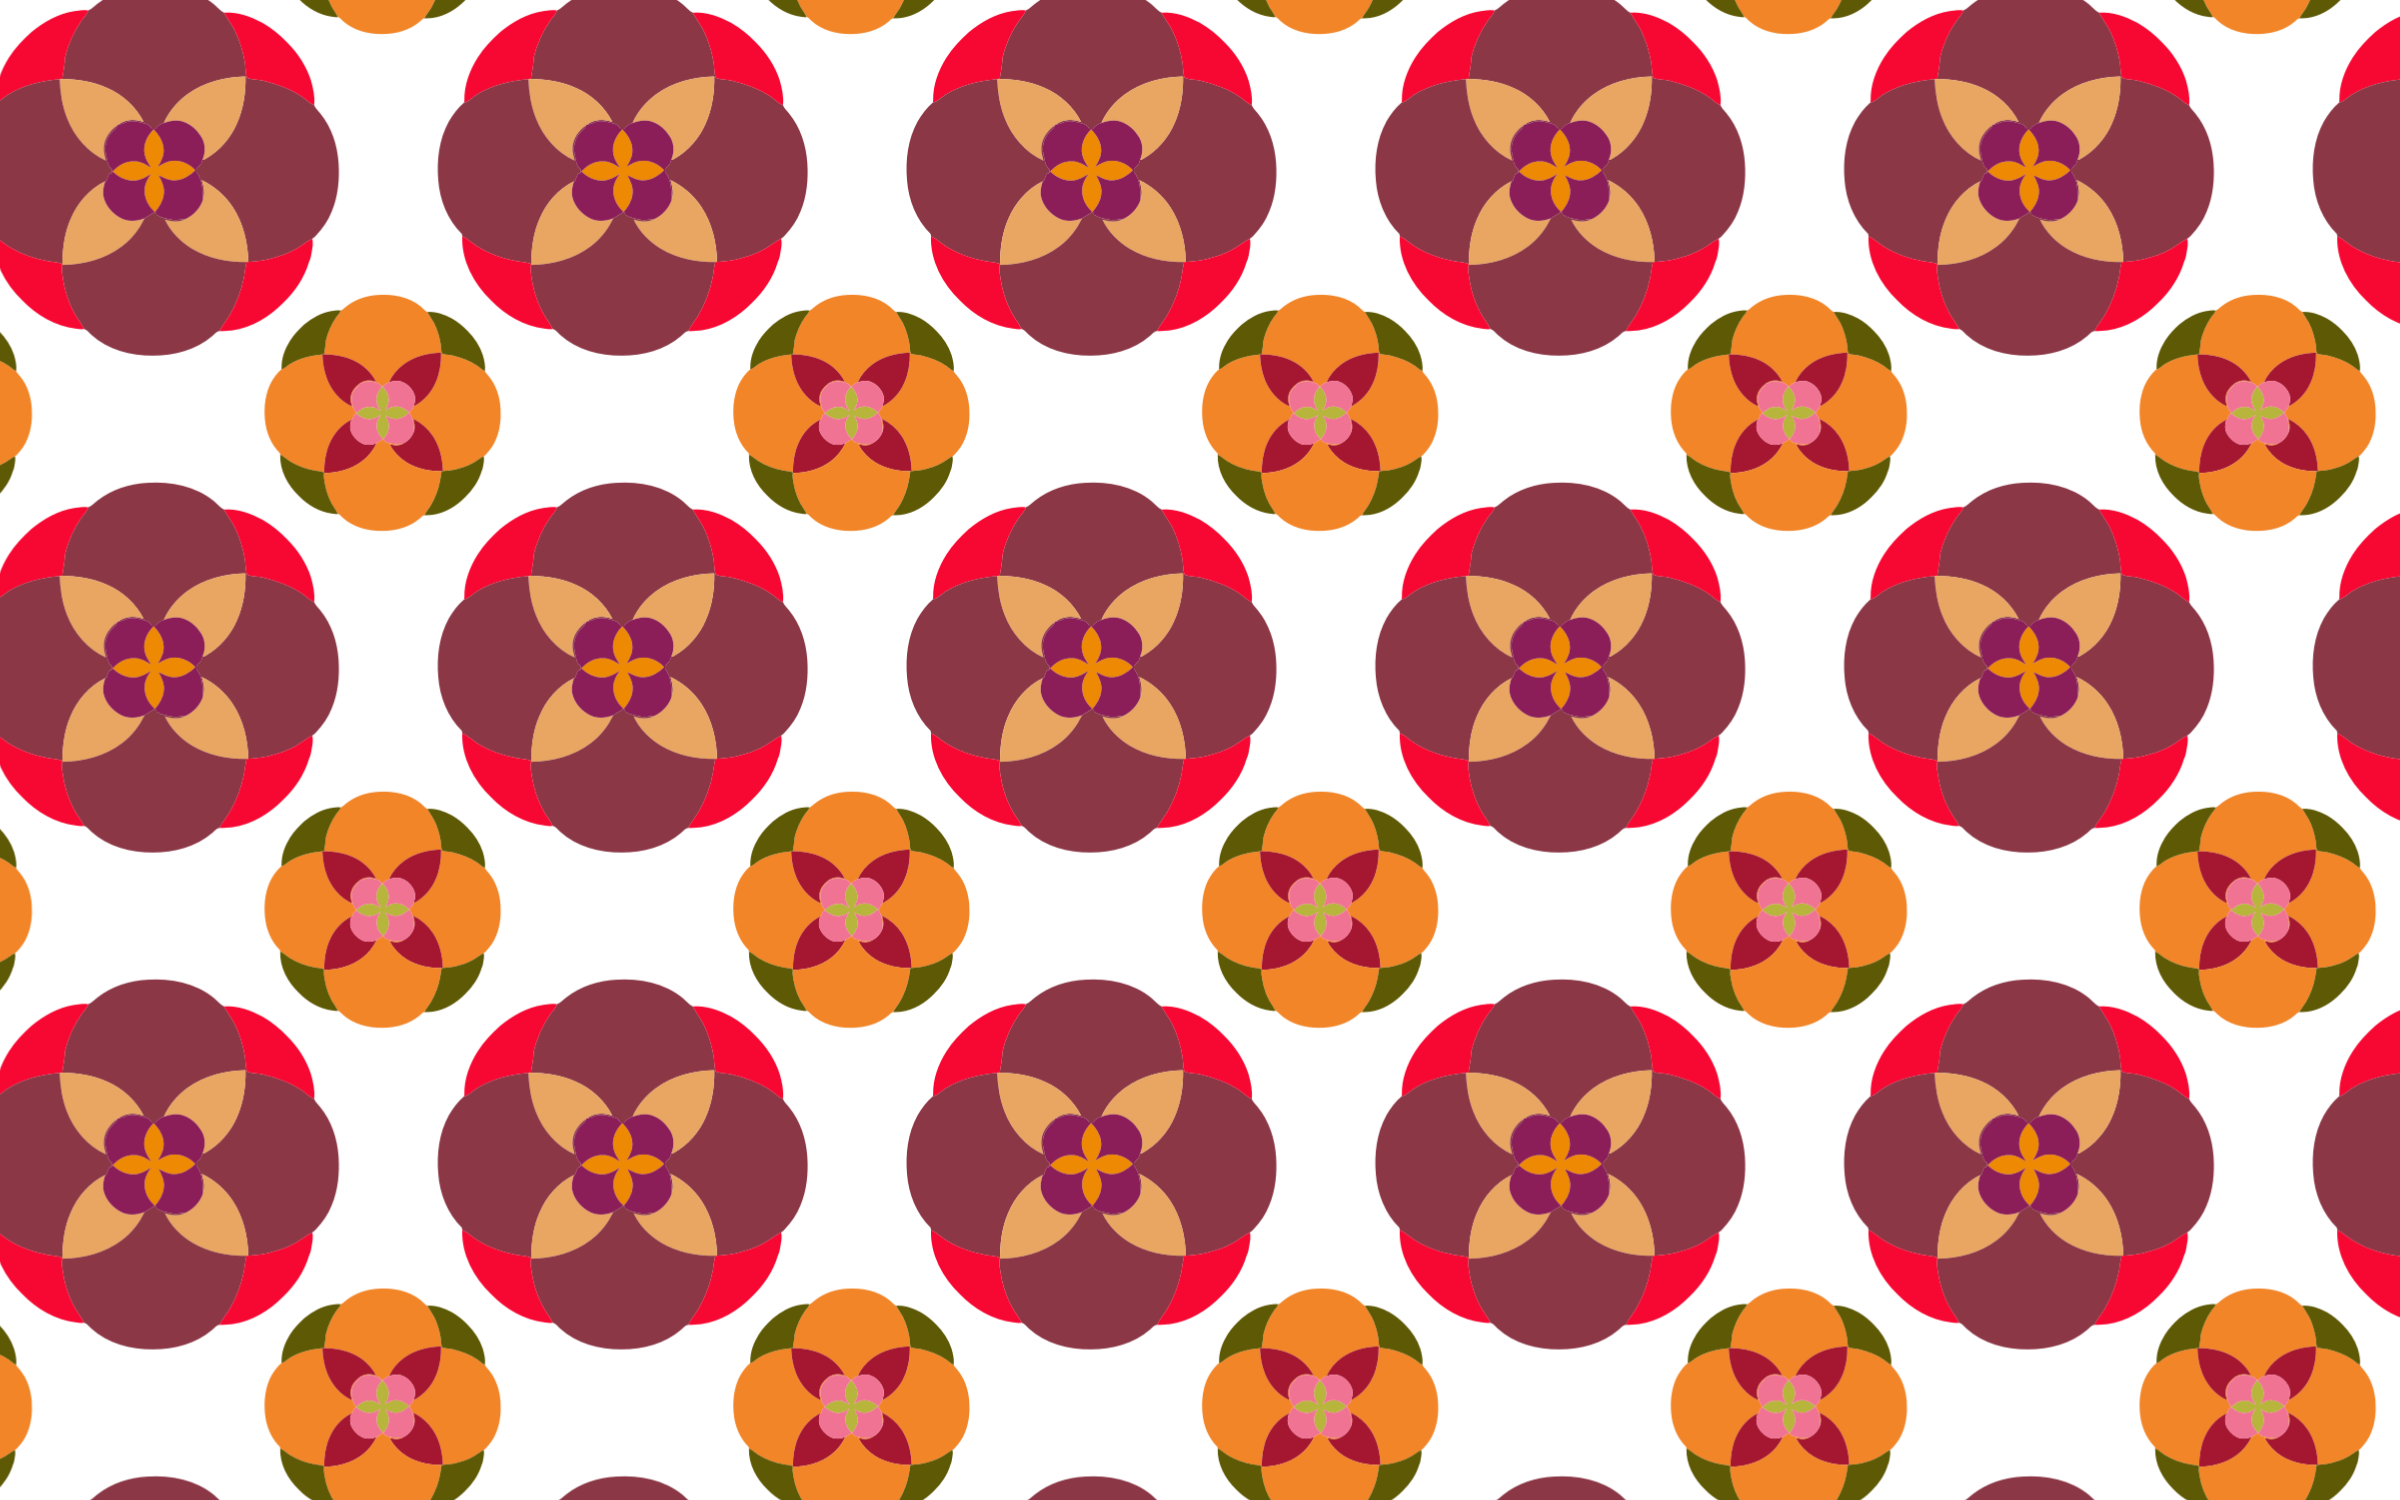 Seamless Abstract Floral Pattern No Background by GDJ